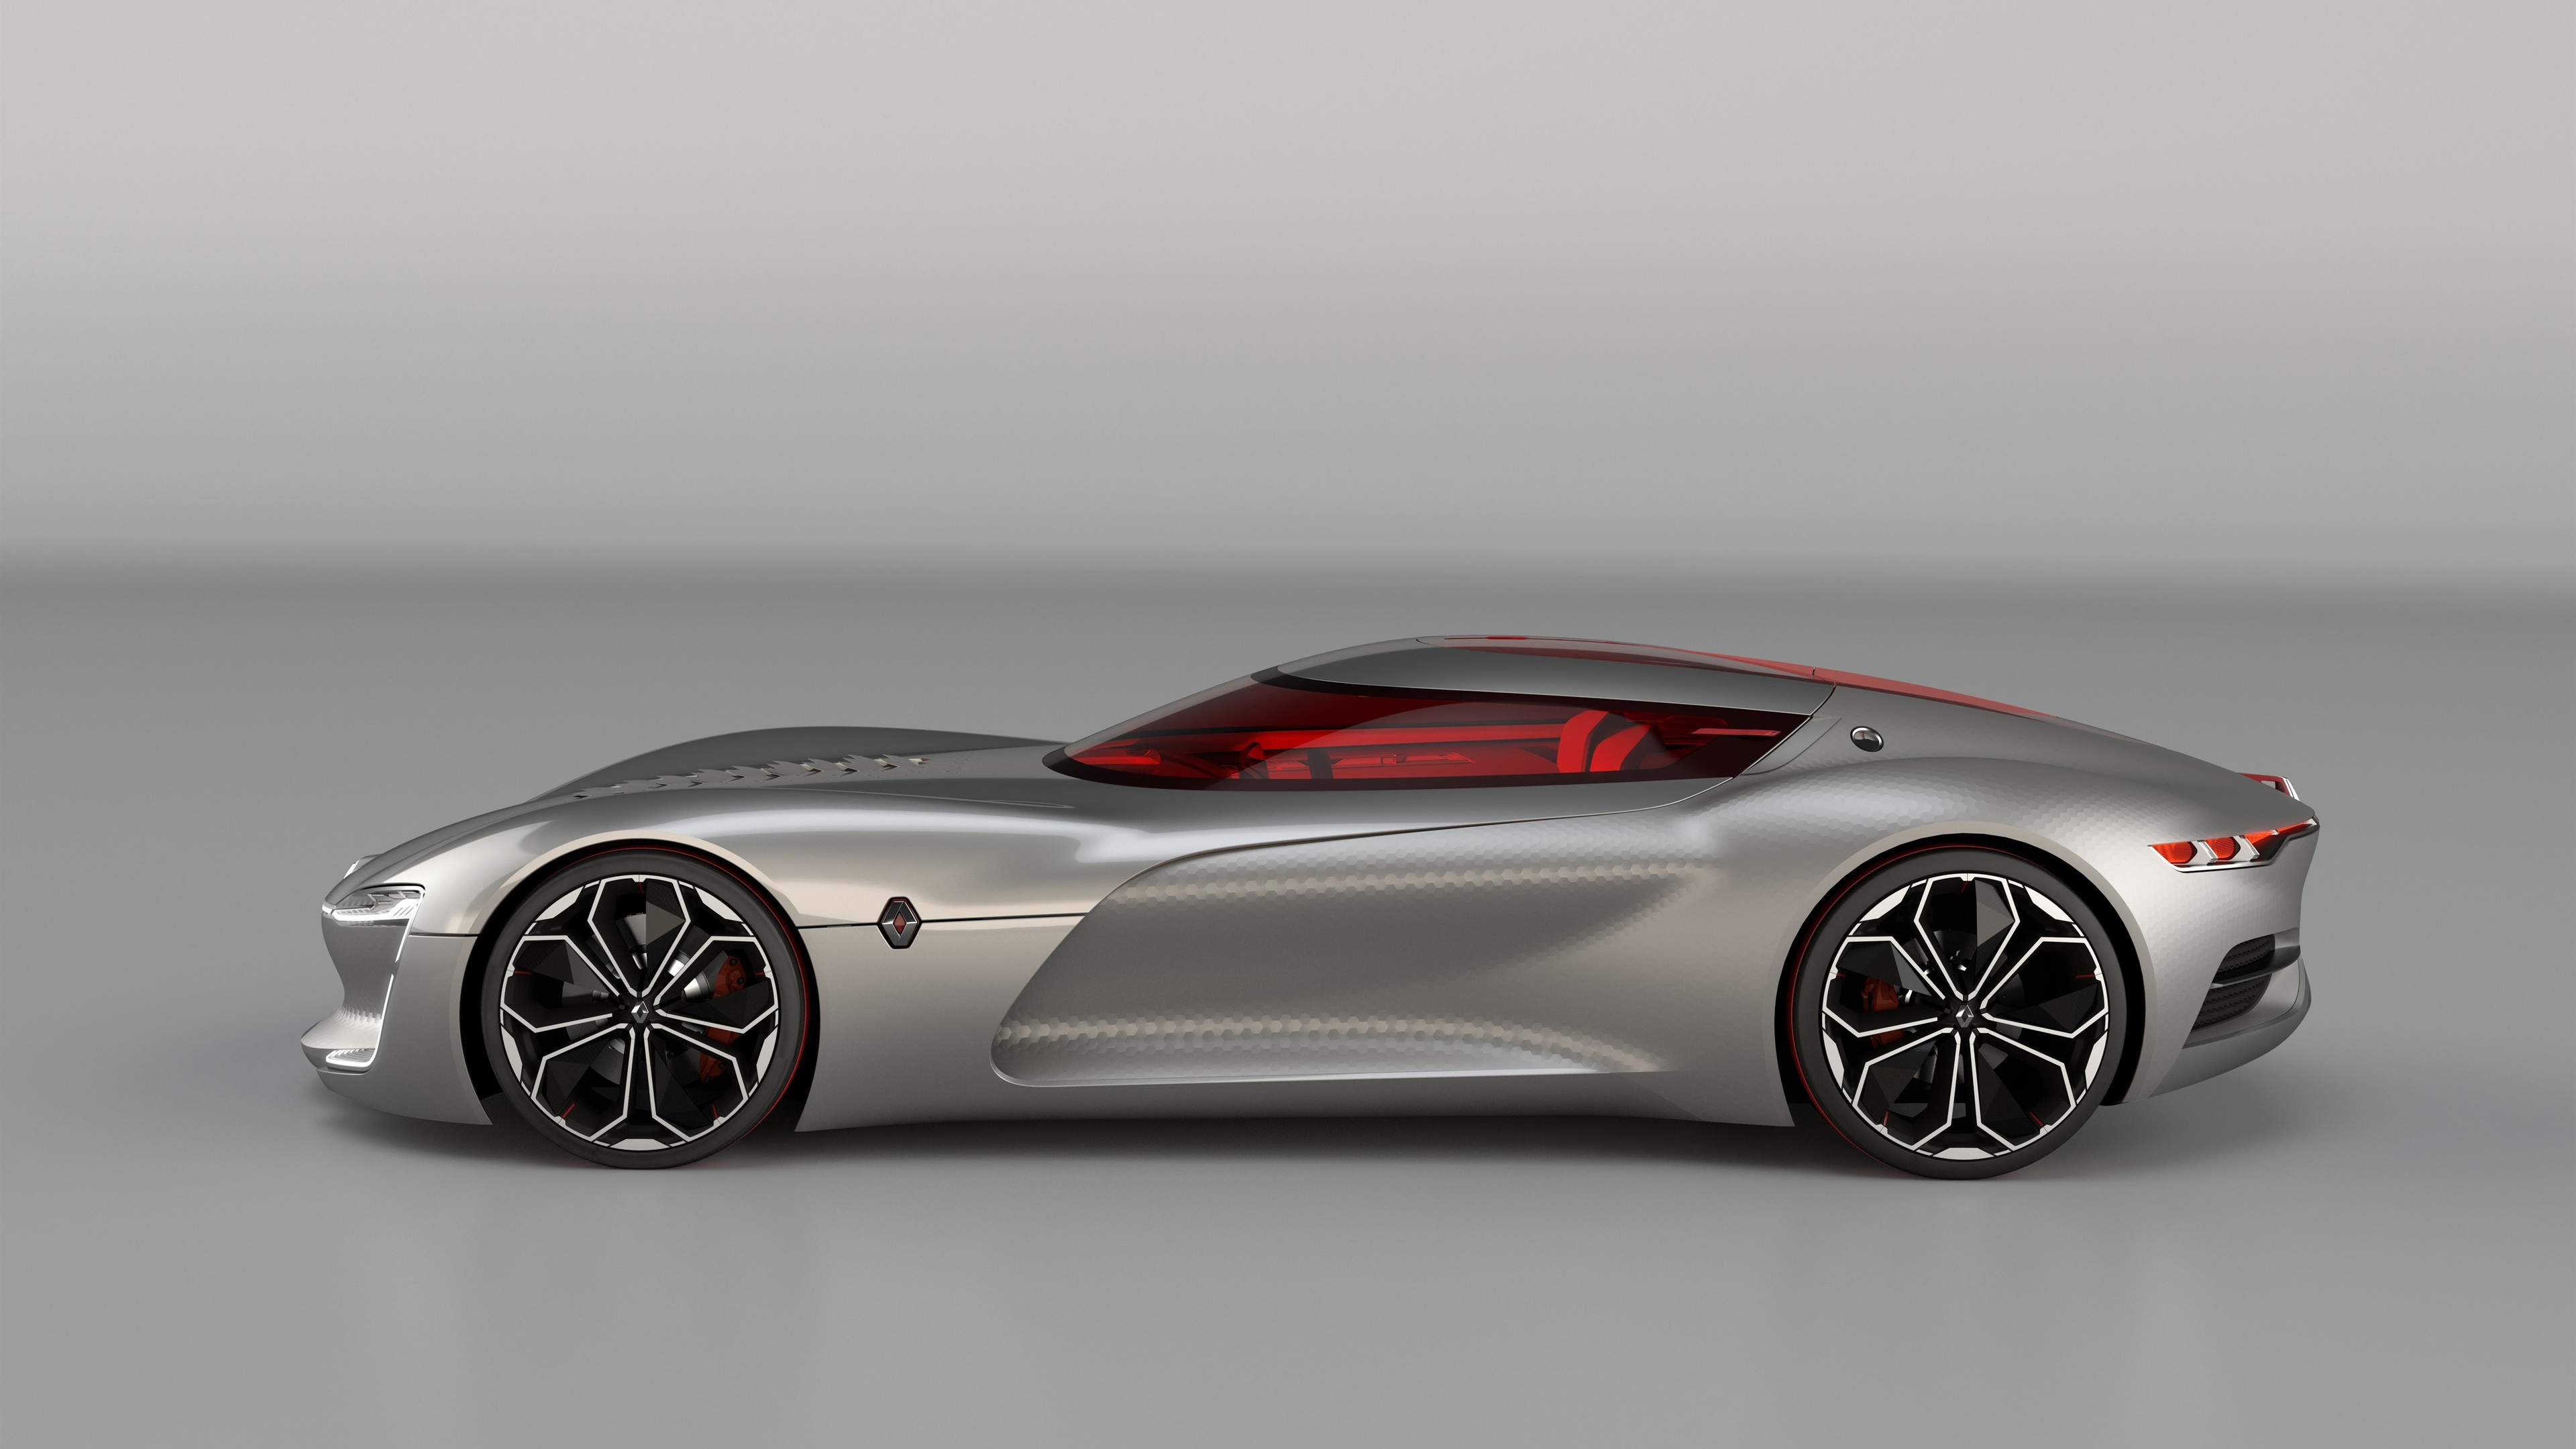 renault trezor 1539104818 - Renault Trezor - renault trezor wallpapers, electric cars wallpapers, concept car wallpapers, cars wallpapers